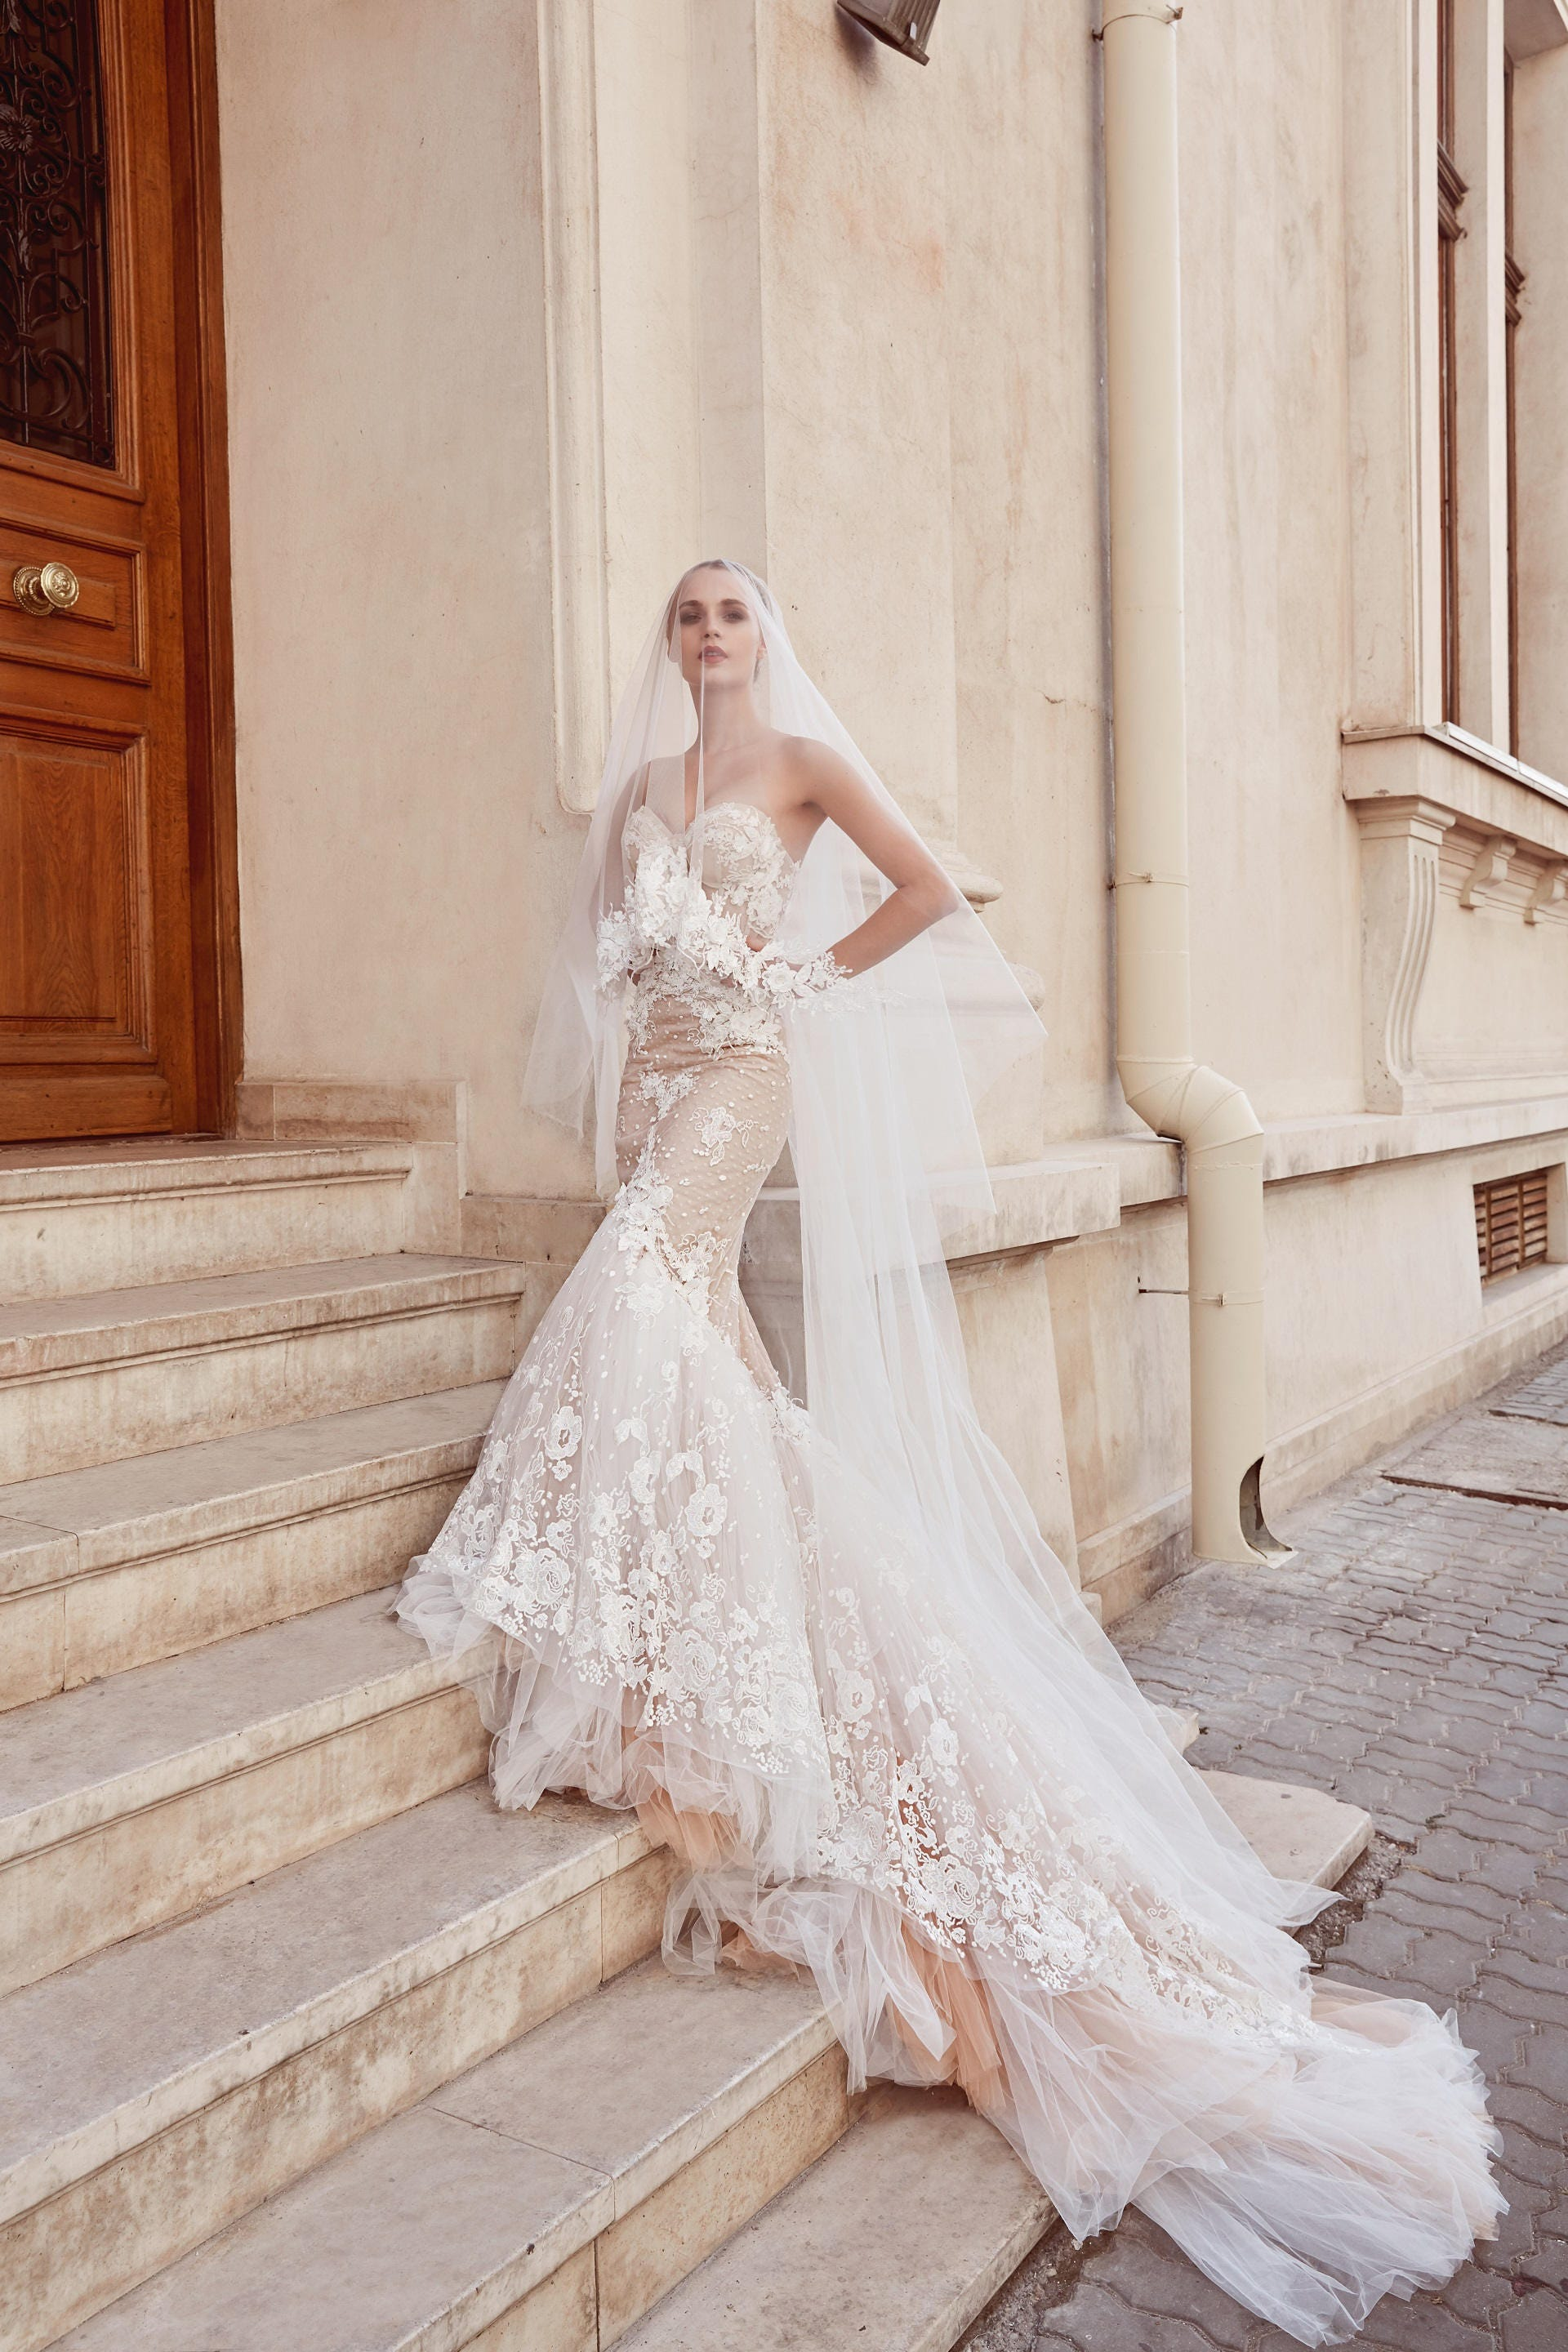 Lace Mermaid Wedding Dress Strapless Low Back Wedding Gown